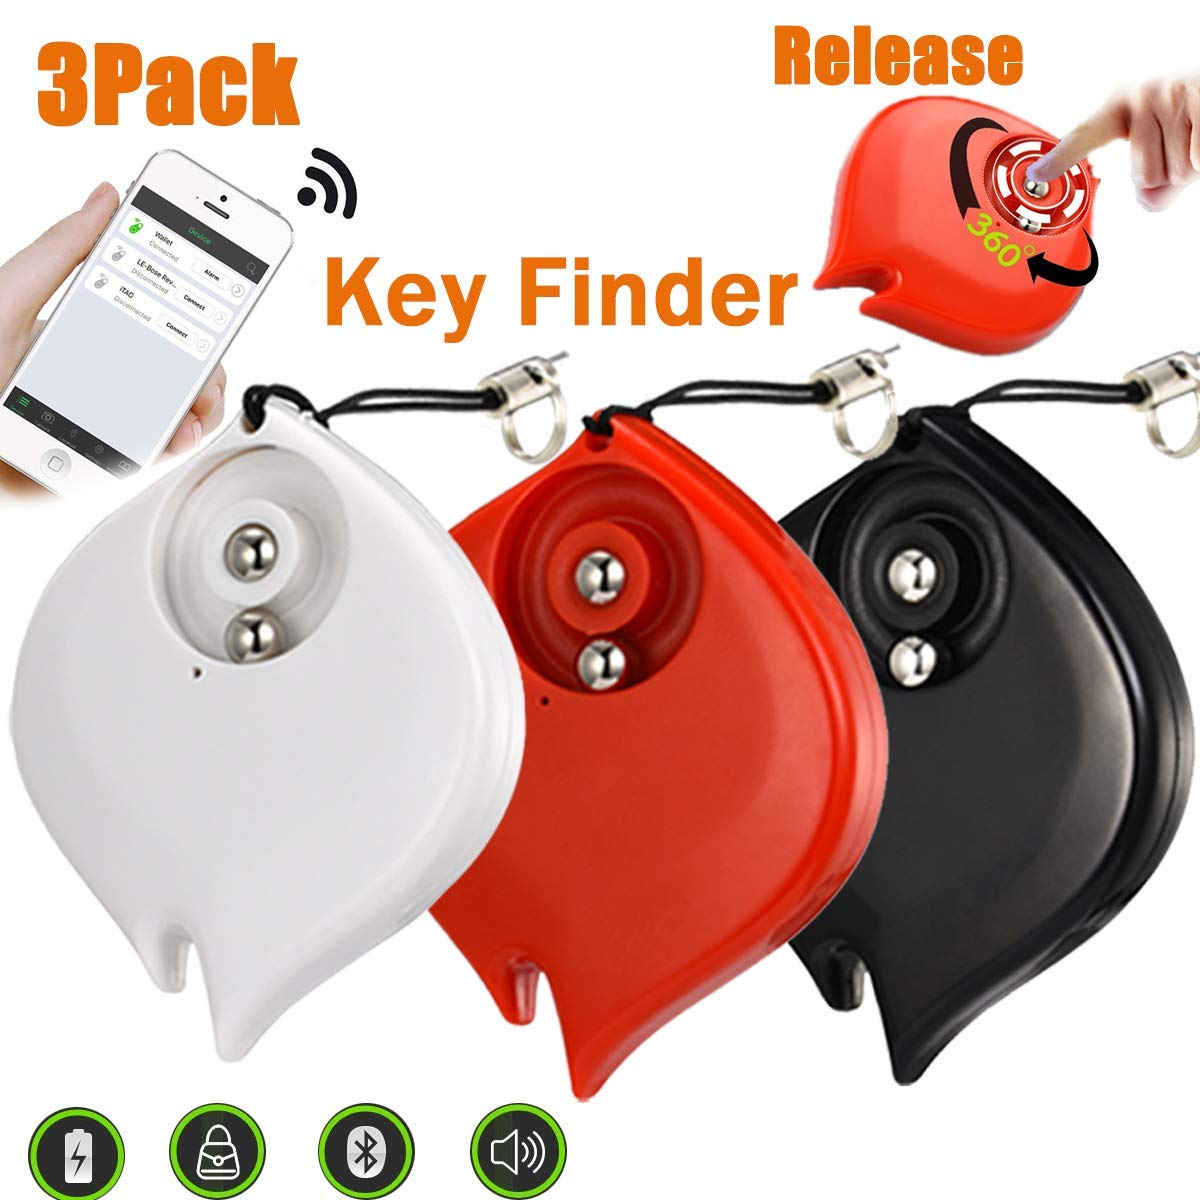 3 Pack Mini Smart Finder GPS Tracker Car Keys Wallet Dogs Cats Pet Light Anti-Lost Key Finder Alarm Locator Lost Keys Handbag APP Control Android iOS Outdoor Home Travel School Office Gifts